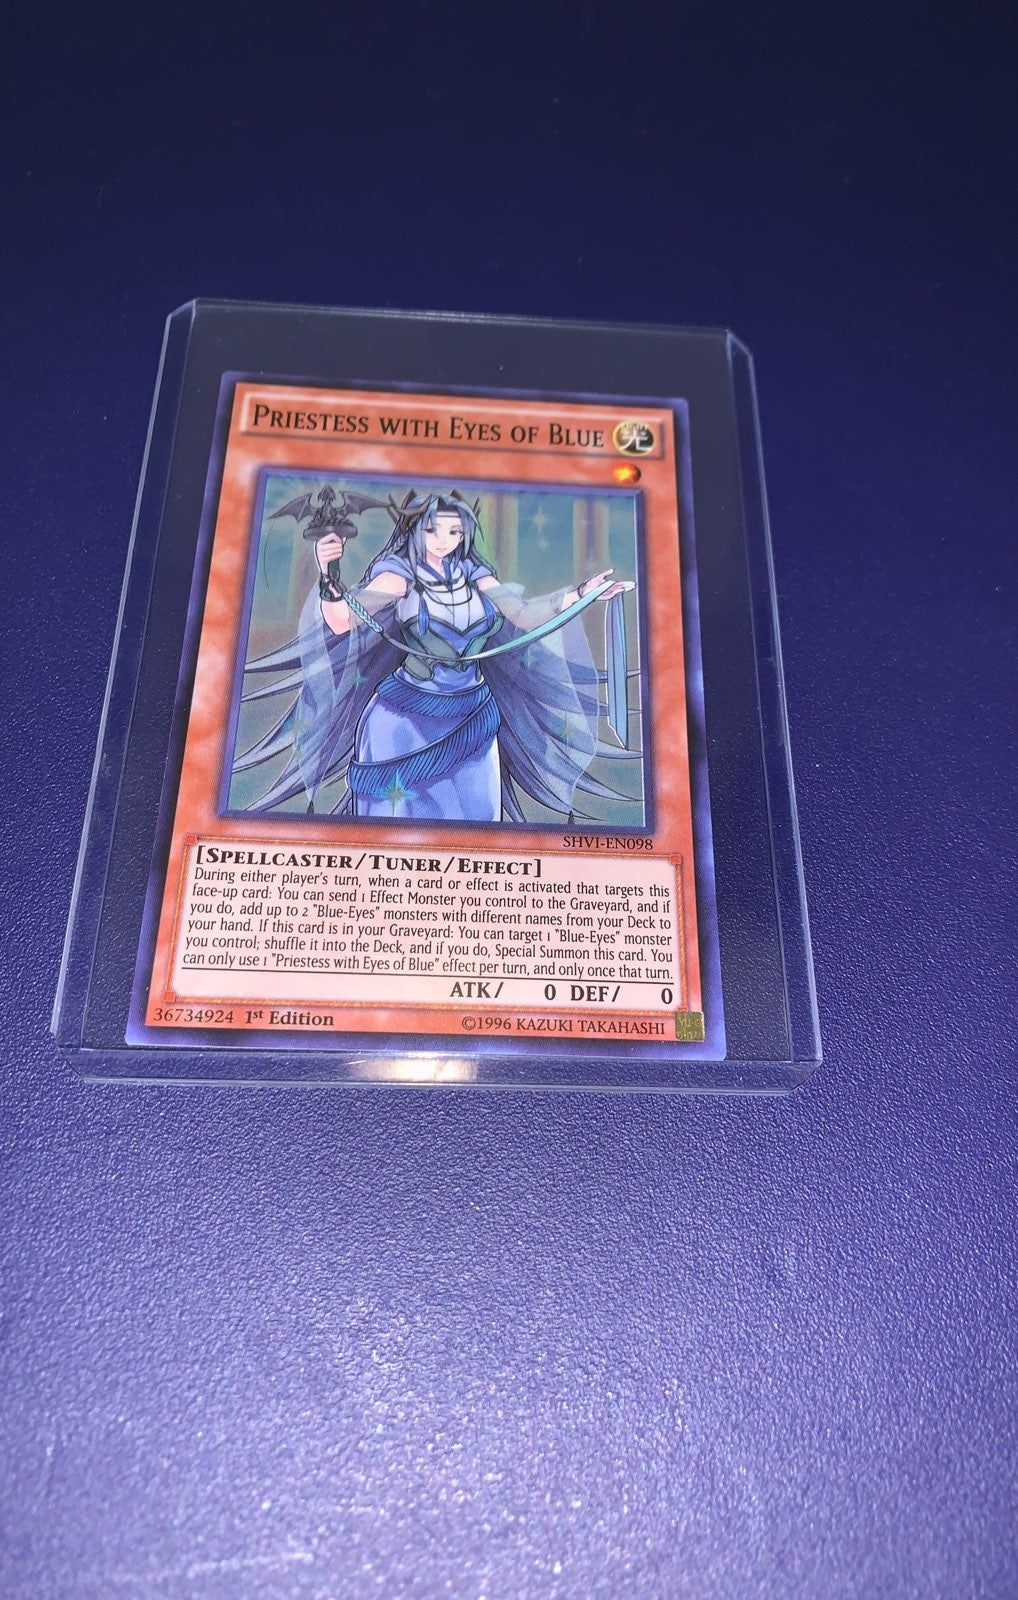 priestess with eyes of blue brand new yugioh card with